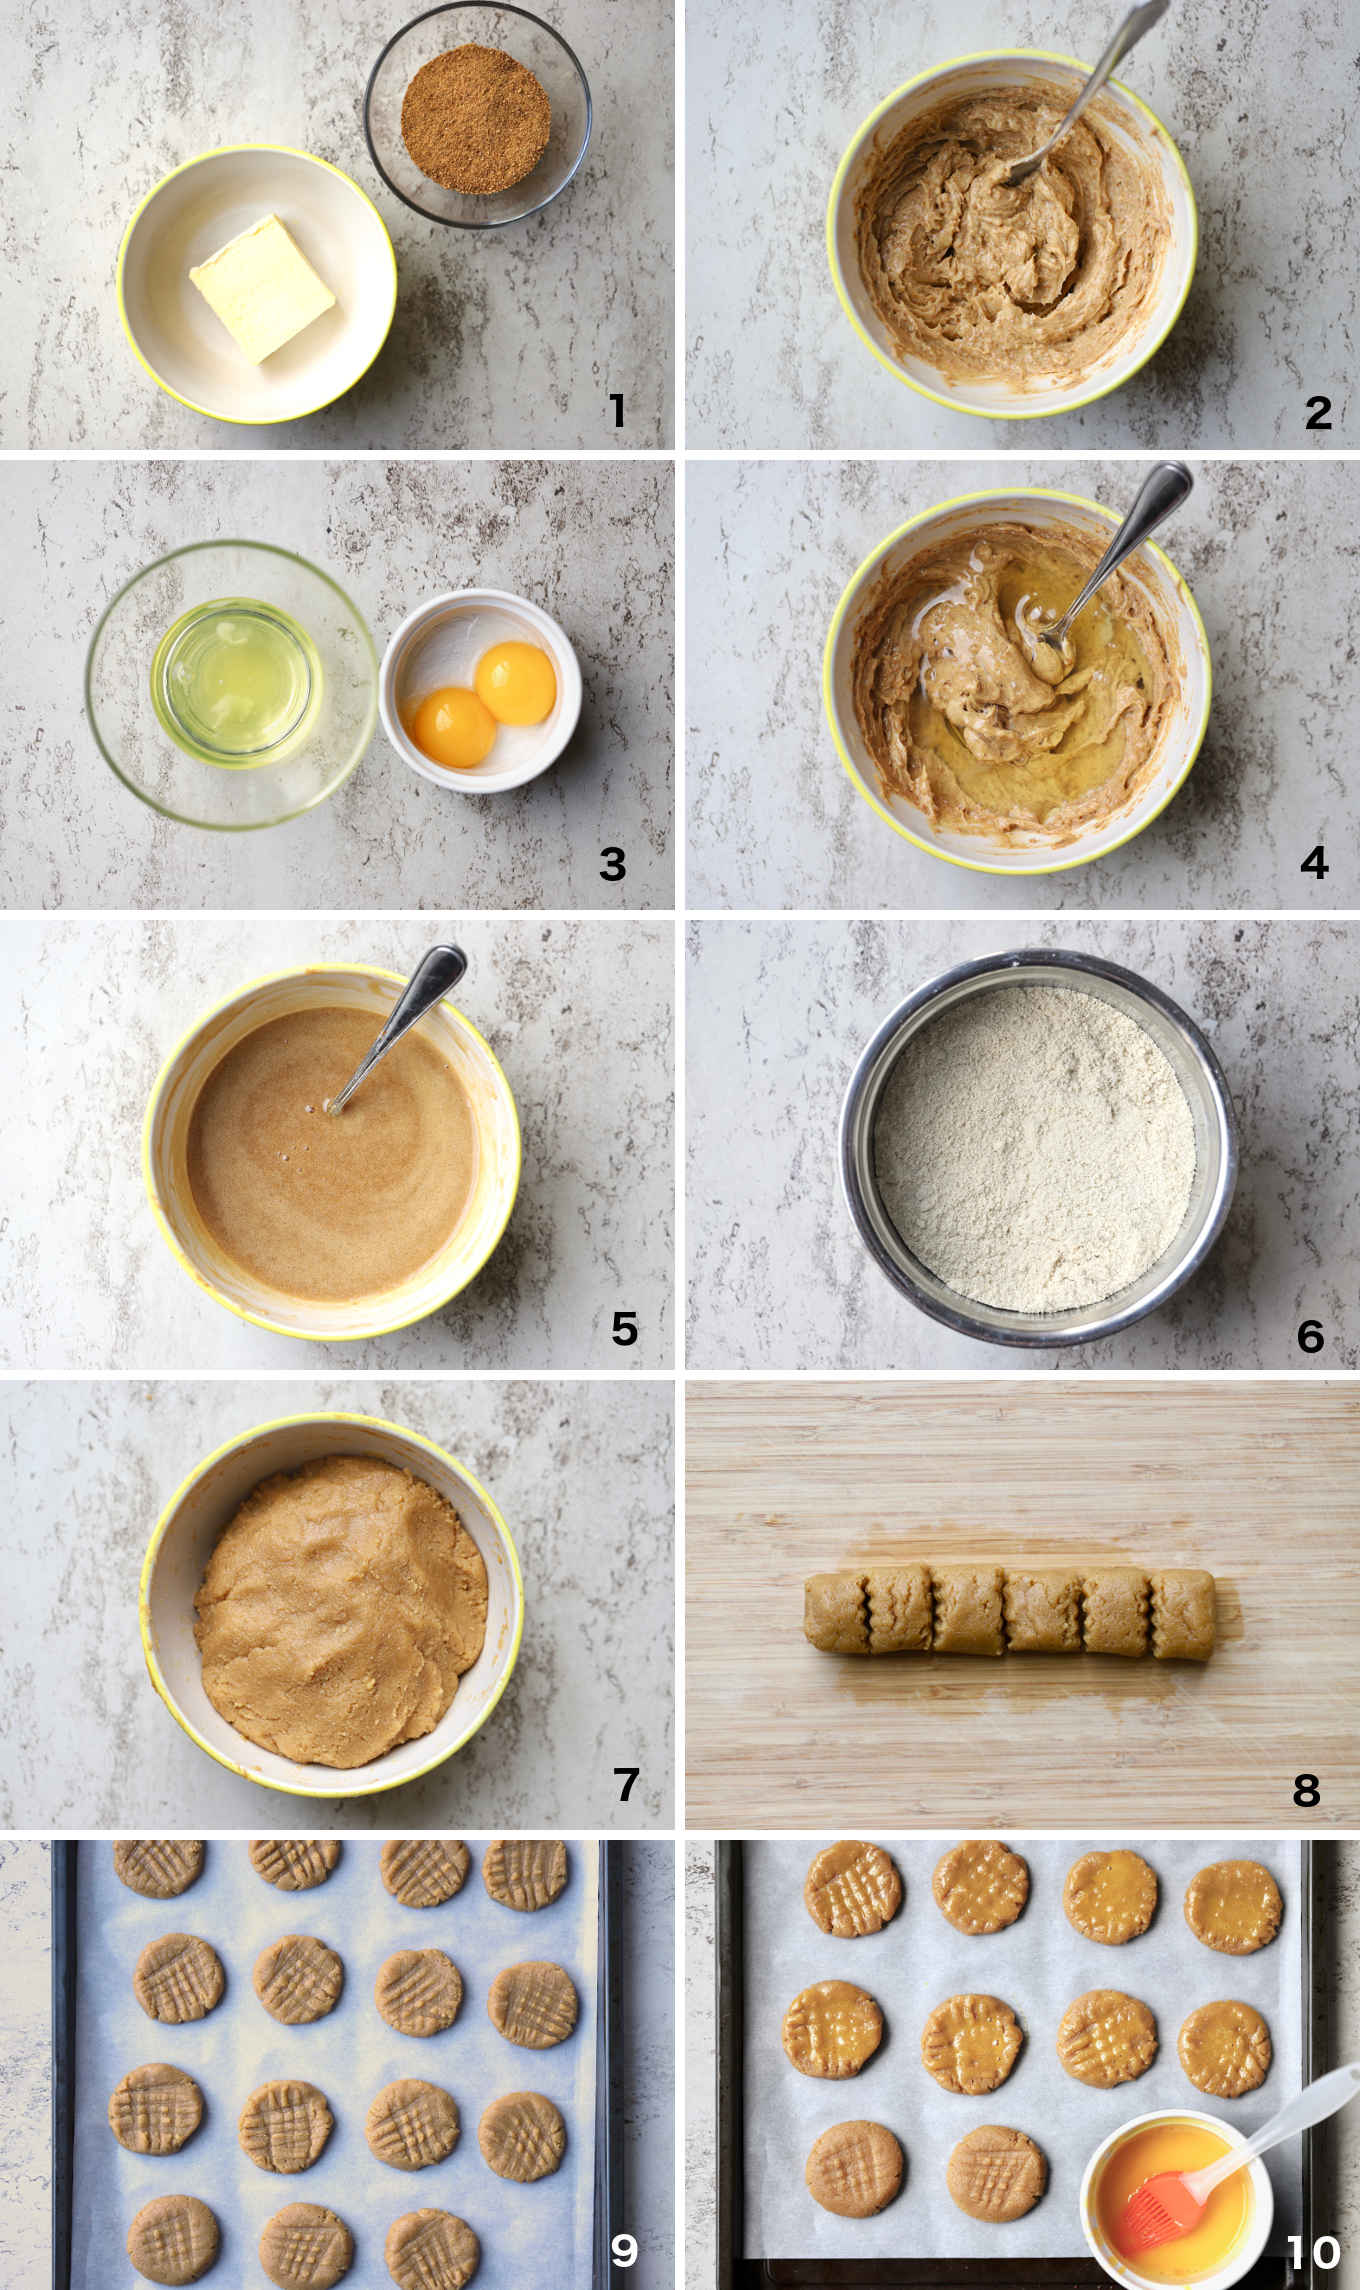 key preparation steps for making the sorghum almond cookies